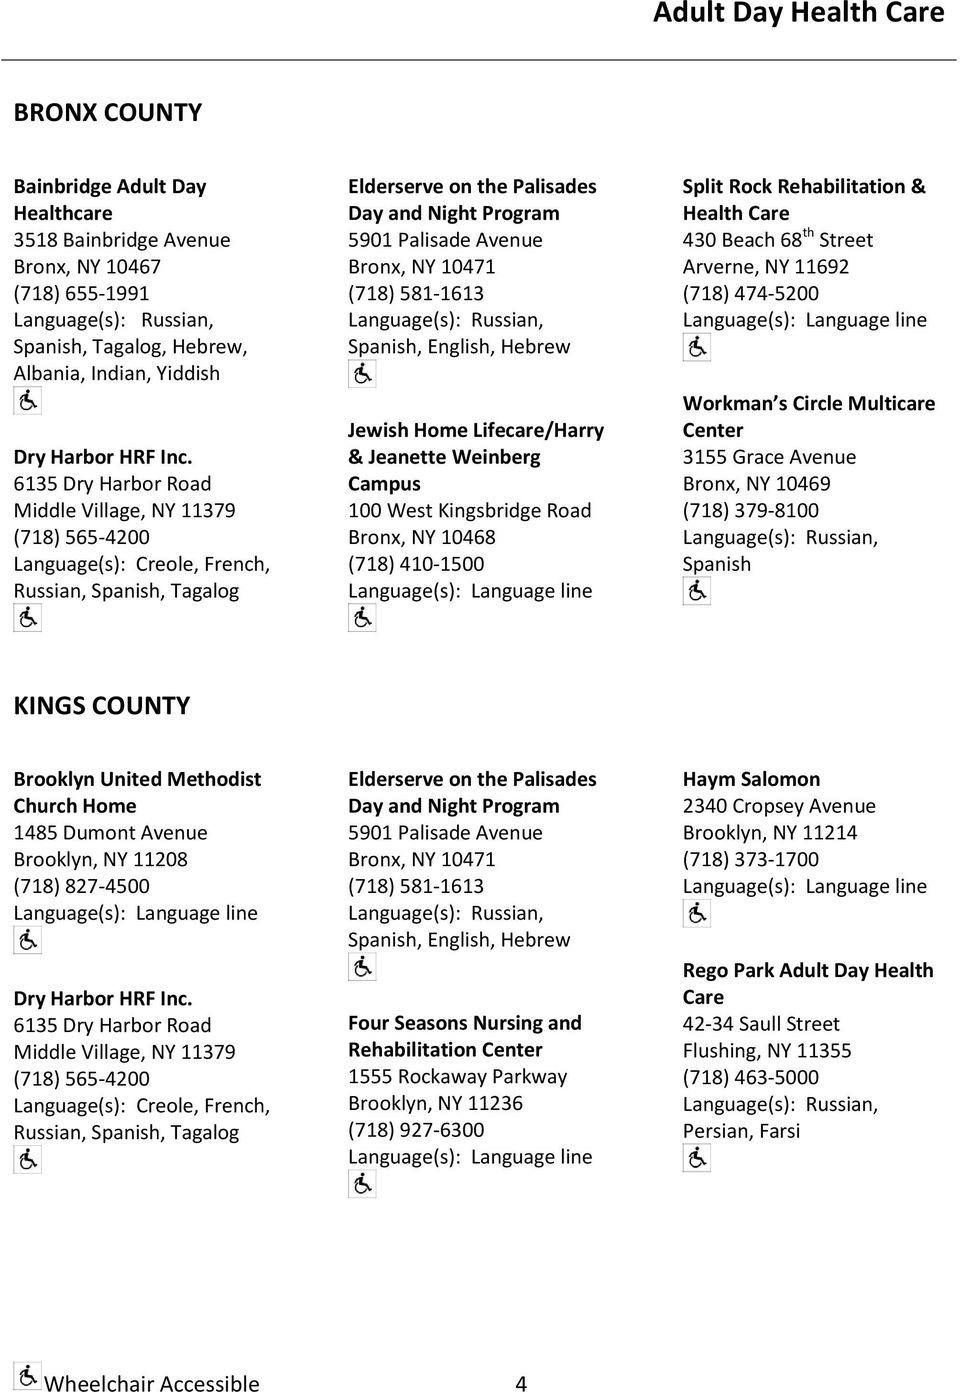 Managed Long-Term Care PROVIDER DIRECTORY - PDF